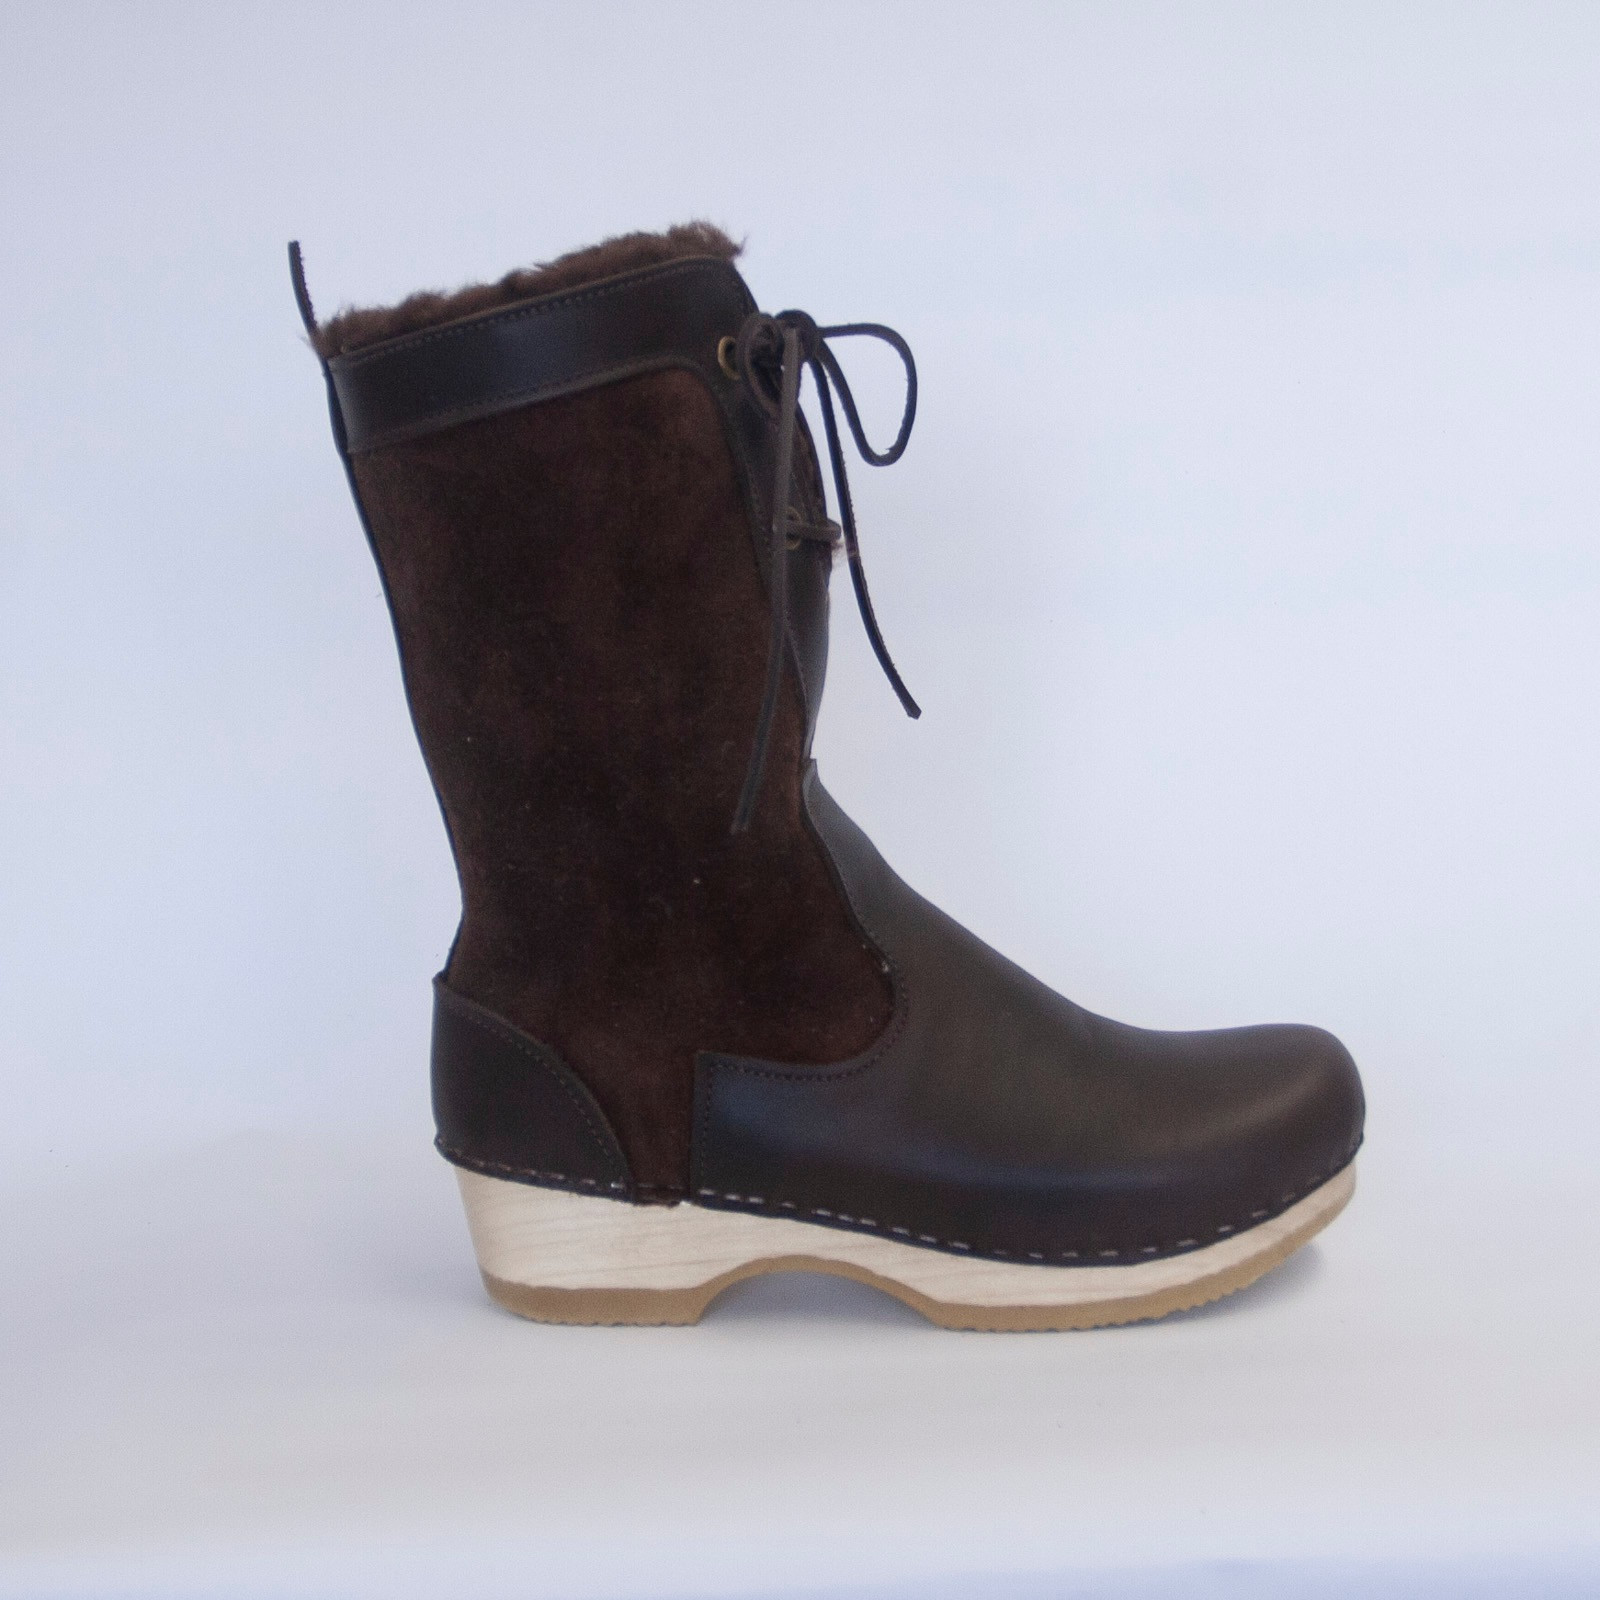 Lace Up Clog Boots - Low Heels